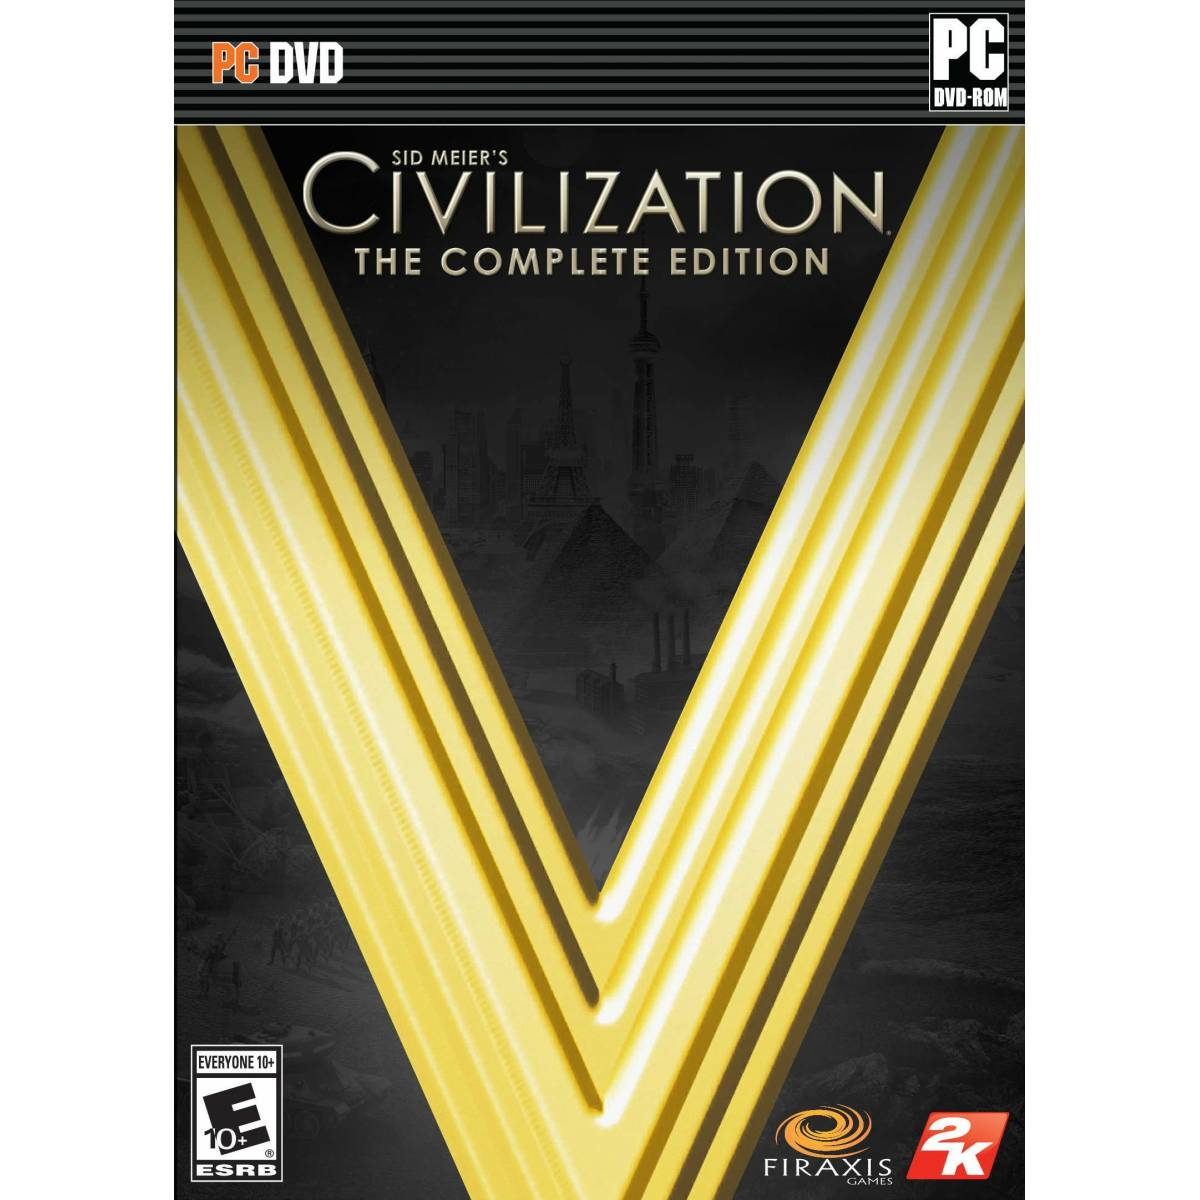 Civilization V 5. Complete Edition(Steam KEY) 16 in 1